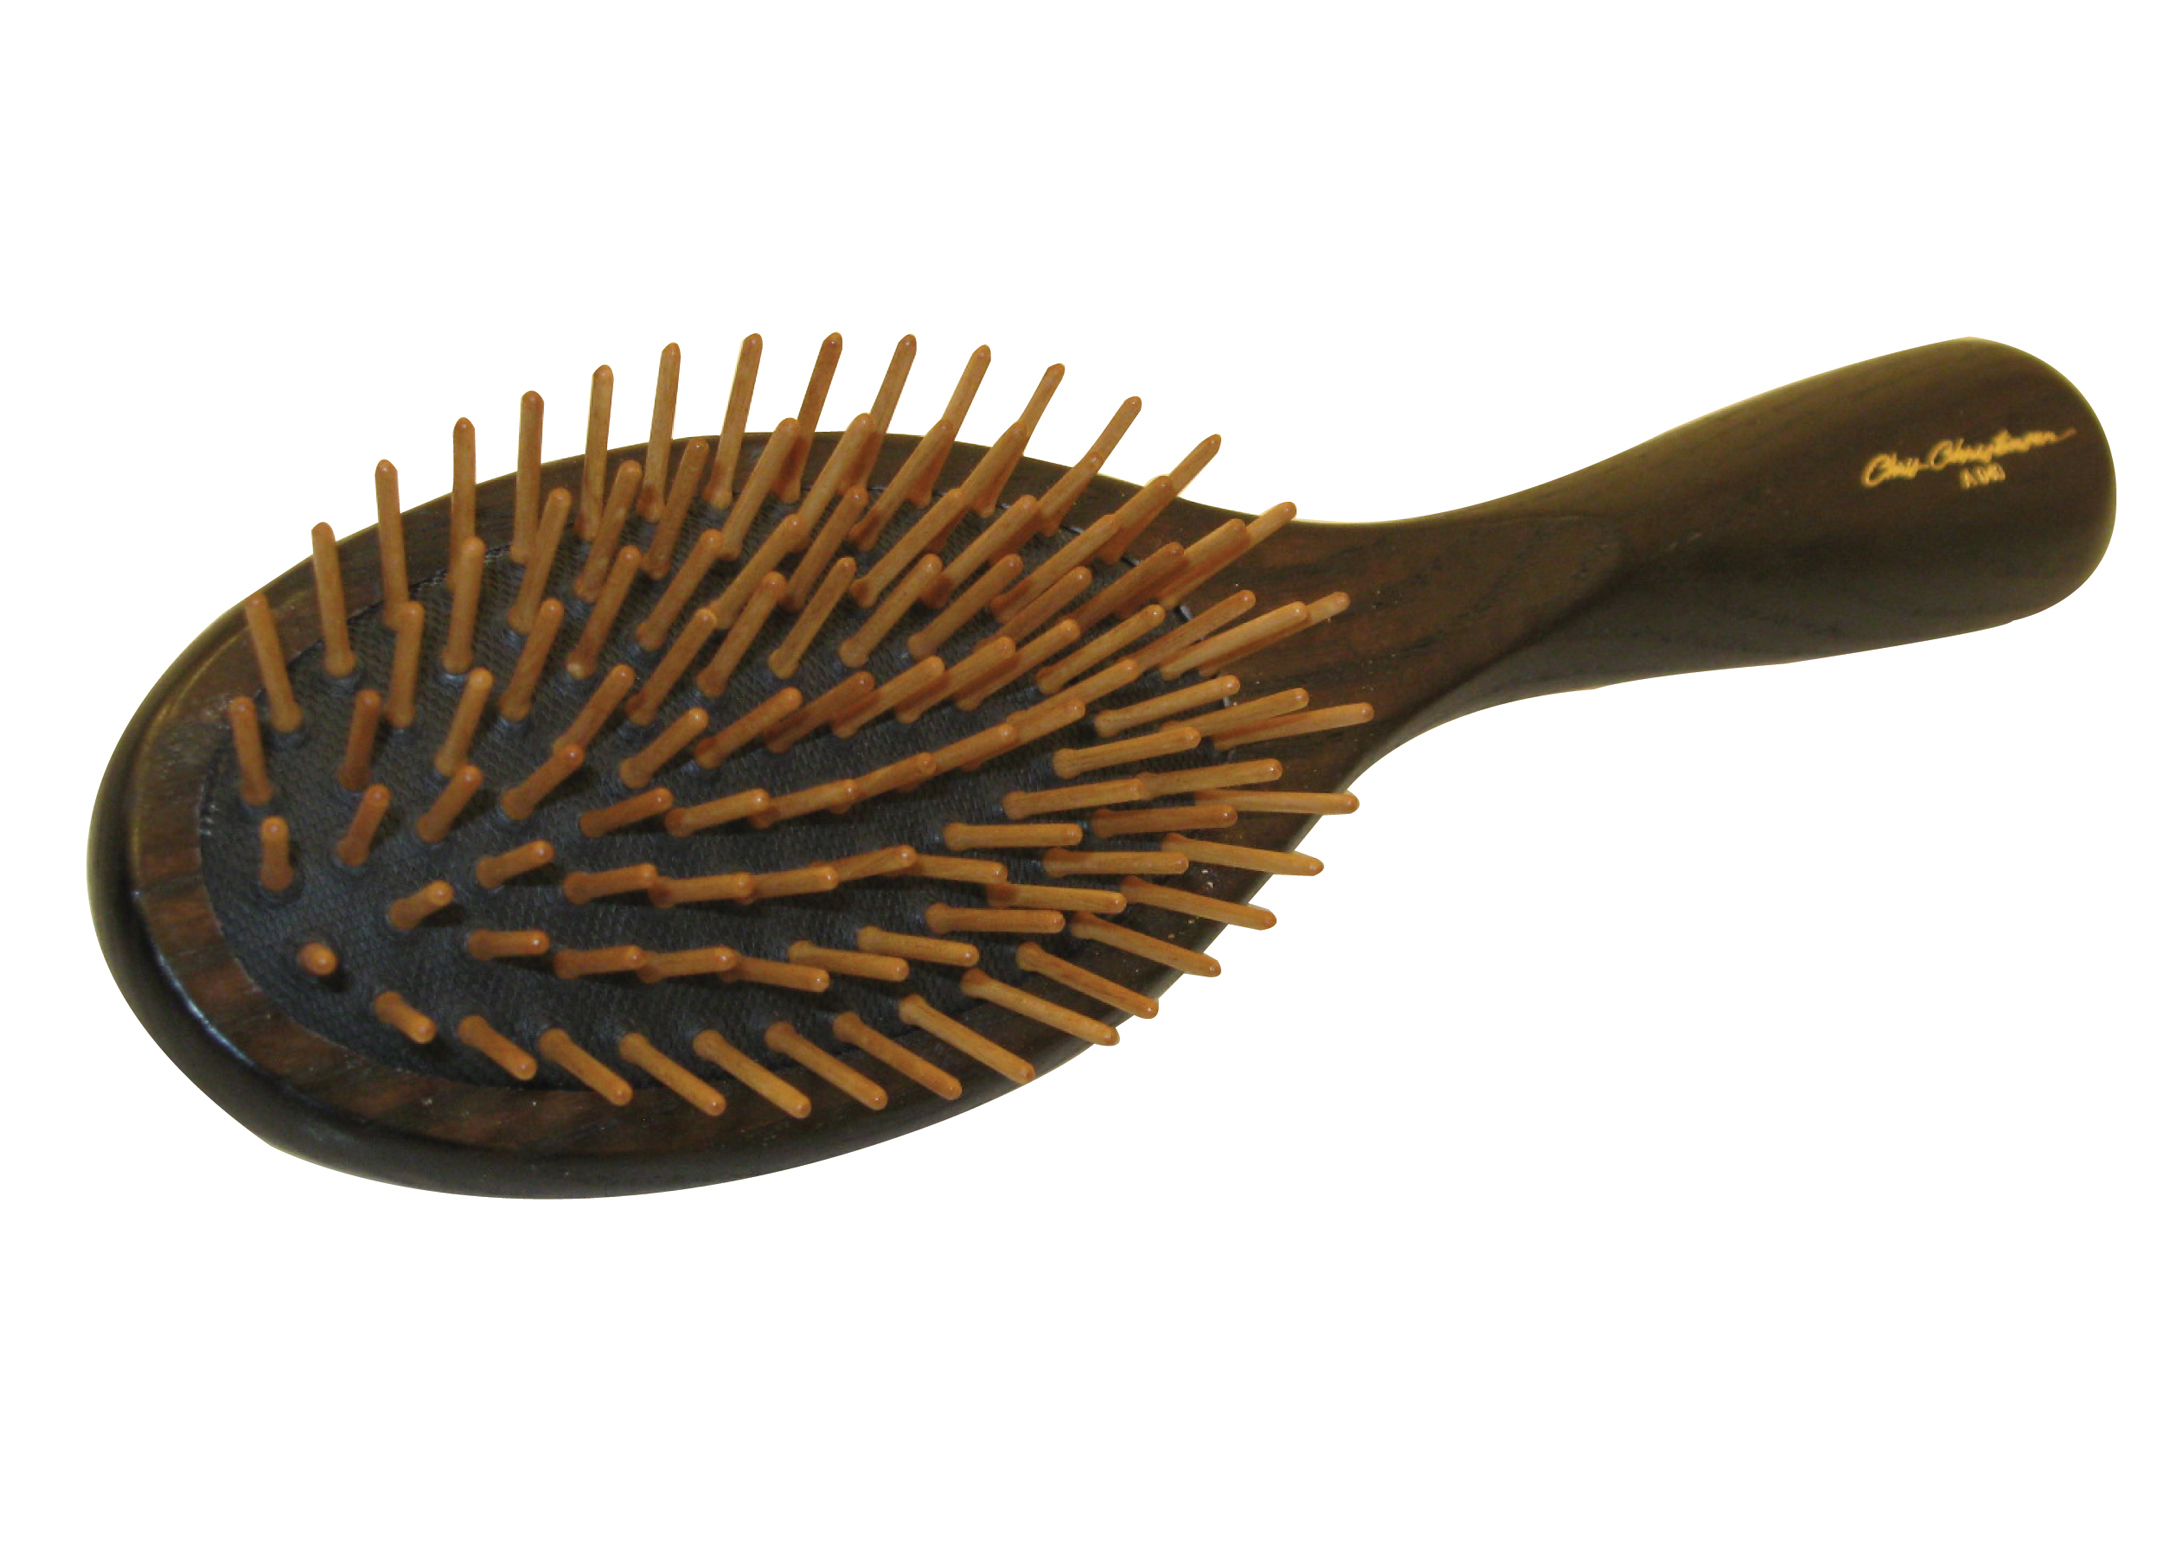 Chris Christensen Systems Oval Wood Pin Brush For Dogs